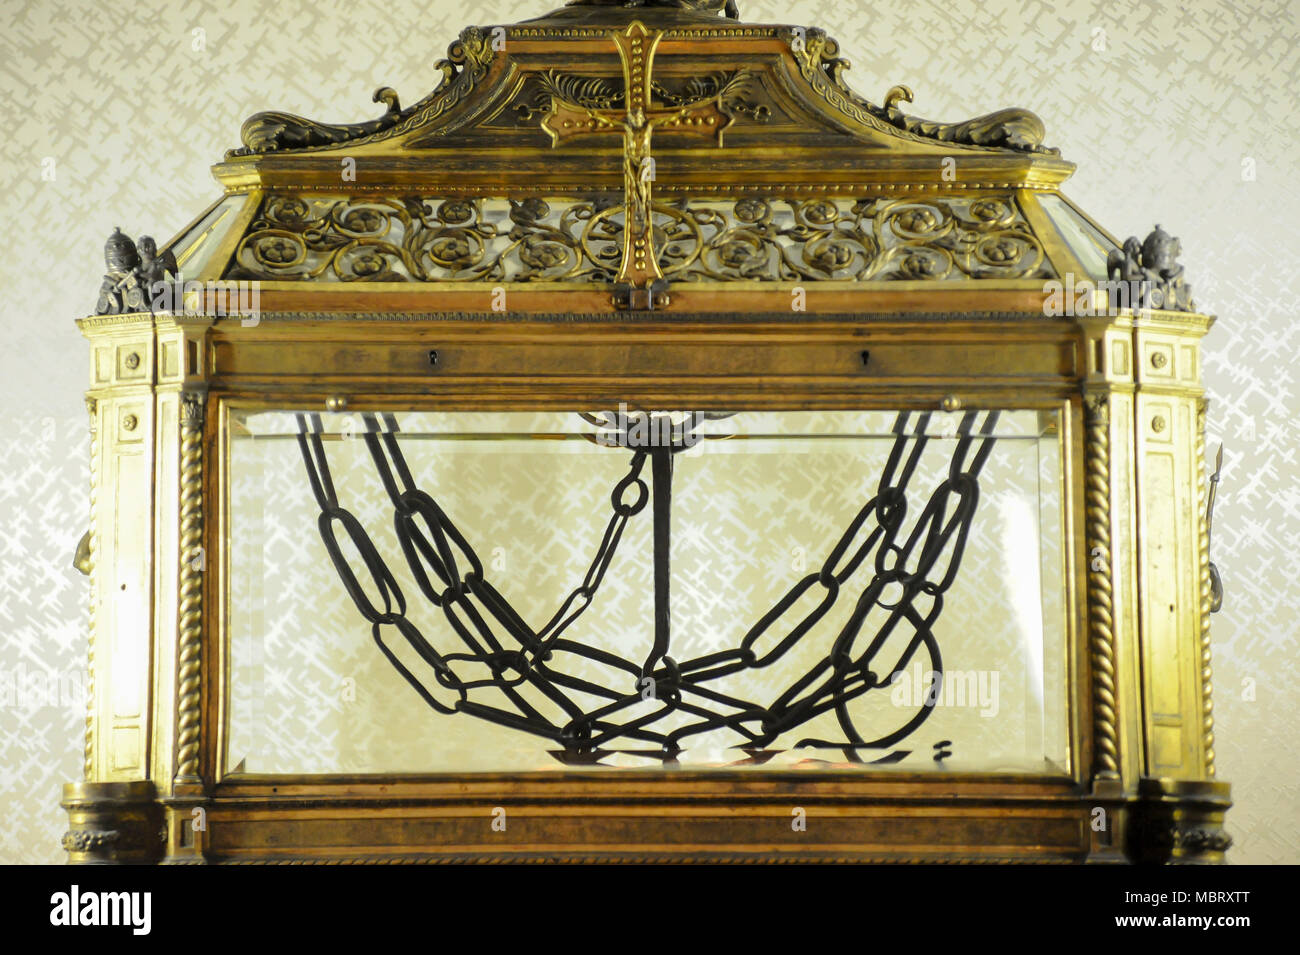 Reliquary containing relic of the chains of St Peter in Basilica di San Pietro in Vincoli al Colle Oppio (Church of Saint Peter in Chains) consecrated Stock Photo